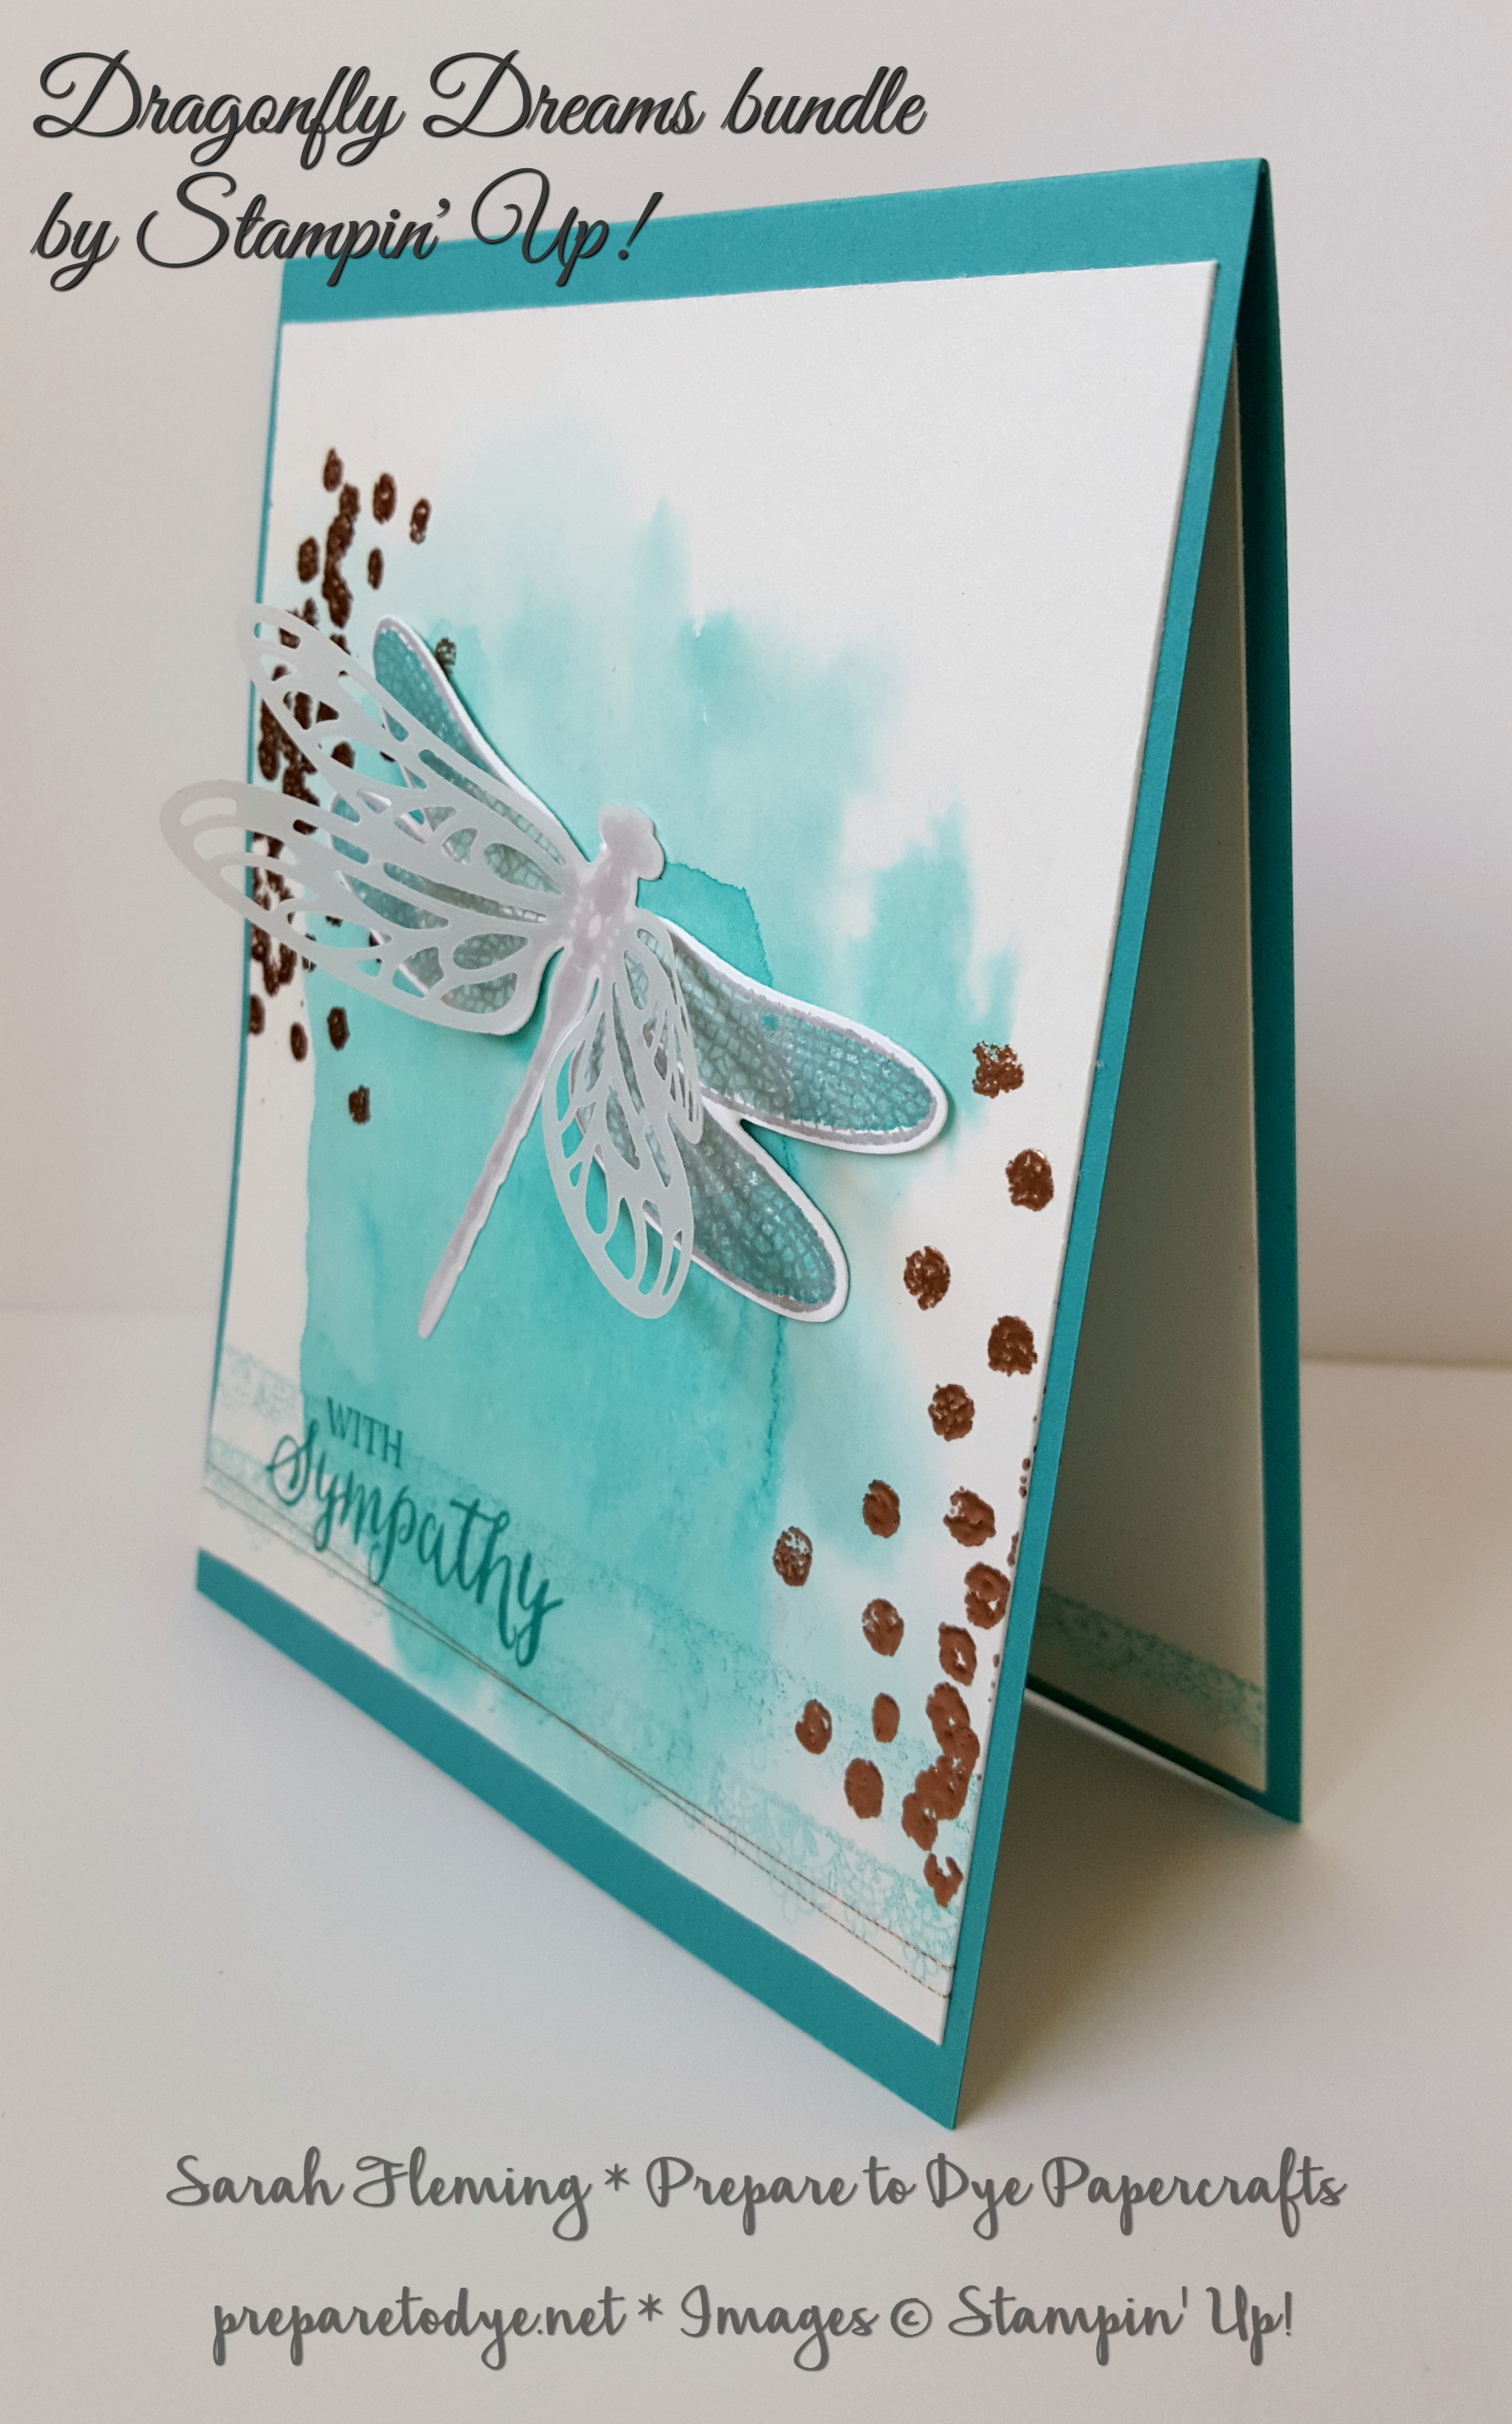 Stampin' Up! Dragonfly Dreams bundle - handmade sympathy card - watercolor background with heat embossing - Sale-A-Bration freebie Delicate Details - Sarah Fleming - Prepare to Dye Papercrafts